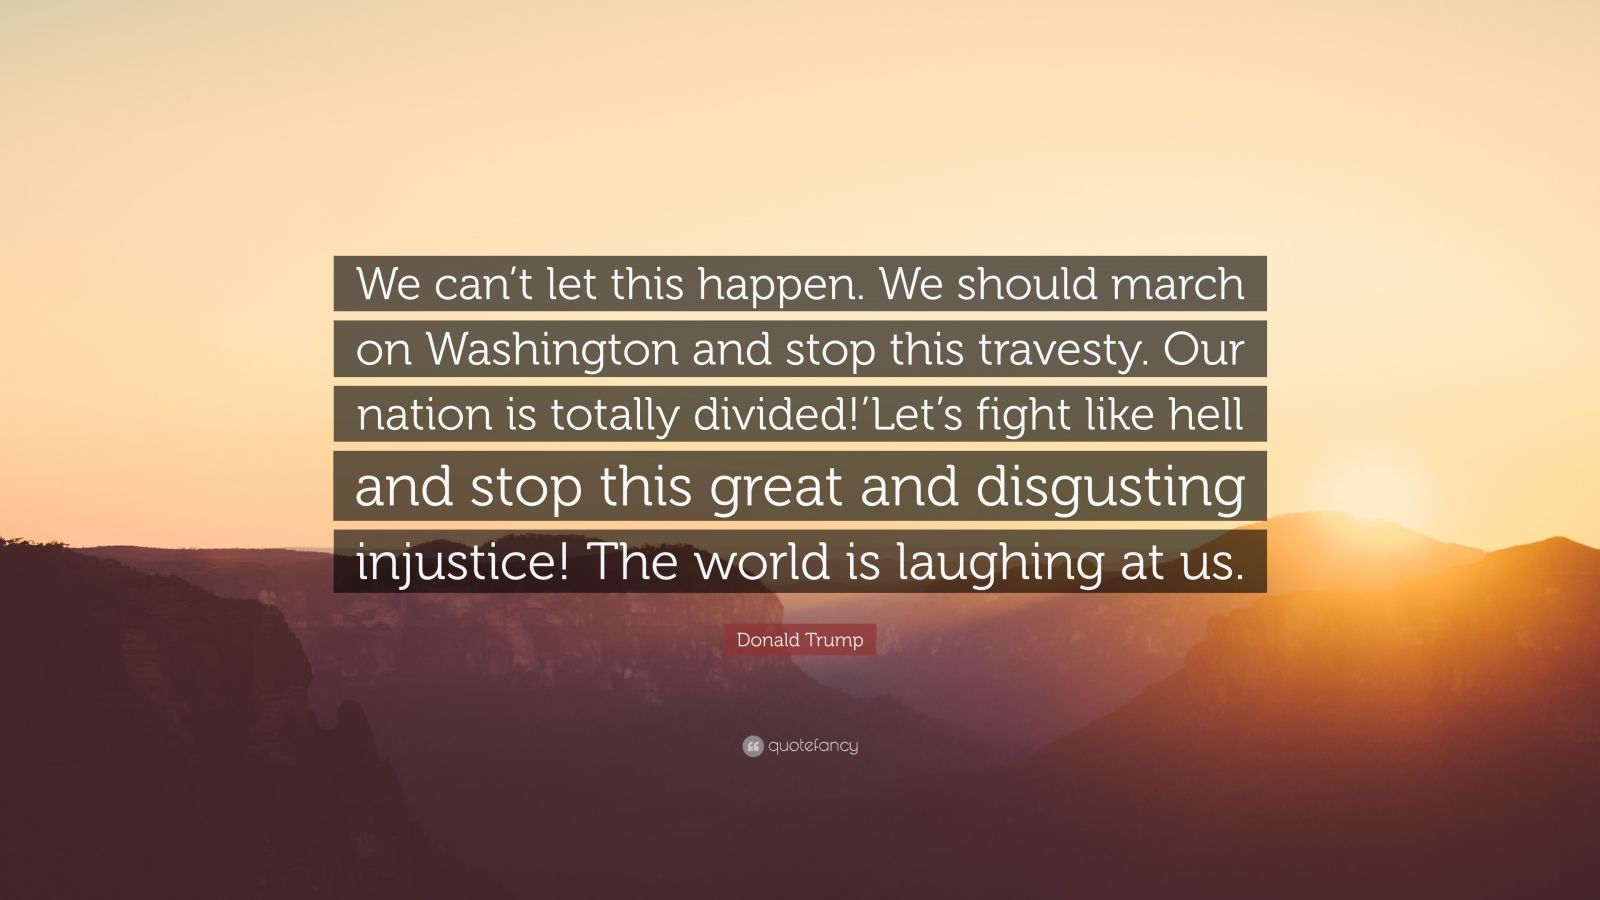 """Donald Trump Quote: """"We can't let this happen. We should march on Washington and stop this travesty. Our nation is totally divided!'Let's fight like hell and stop this great and disgusting injustice! The world is laughing at us."""""""